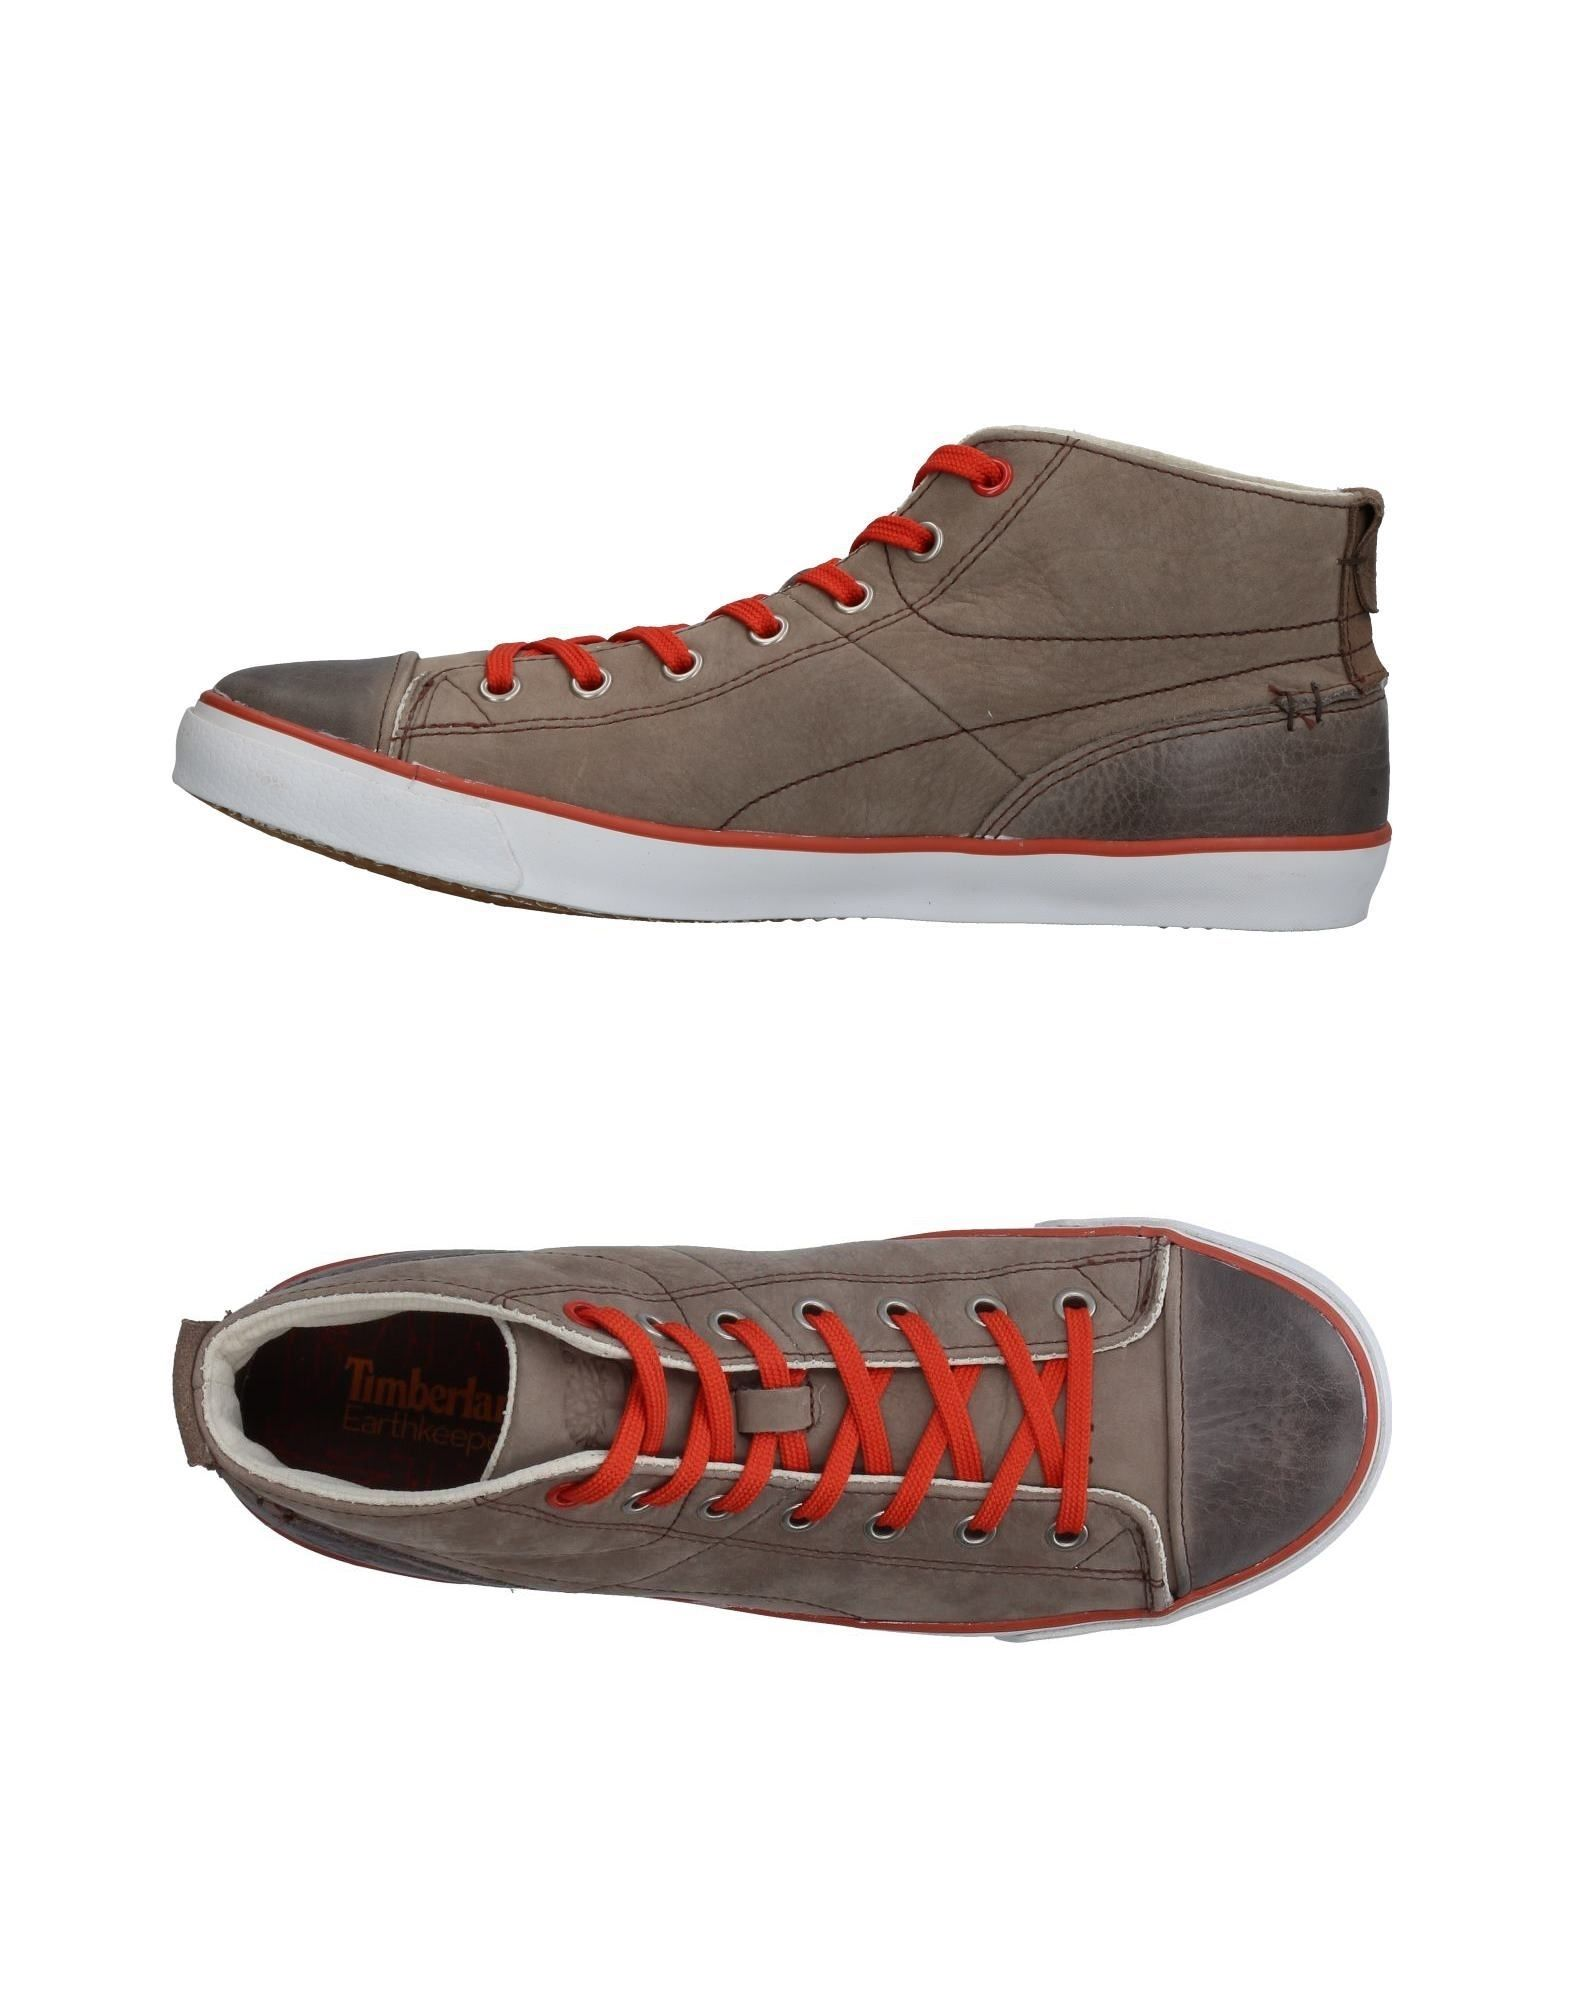 68b529ae497 TIMBERLAND ΠΑΠΟΥΤΣΙΑ Χαμηλά sneakers, Ανδρικά sneakers, ΑΝΔΡΑΣ ...